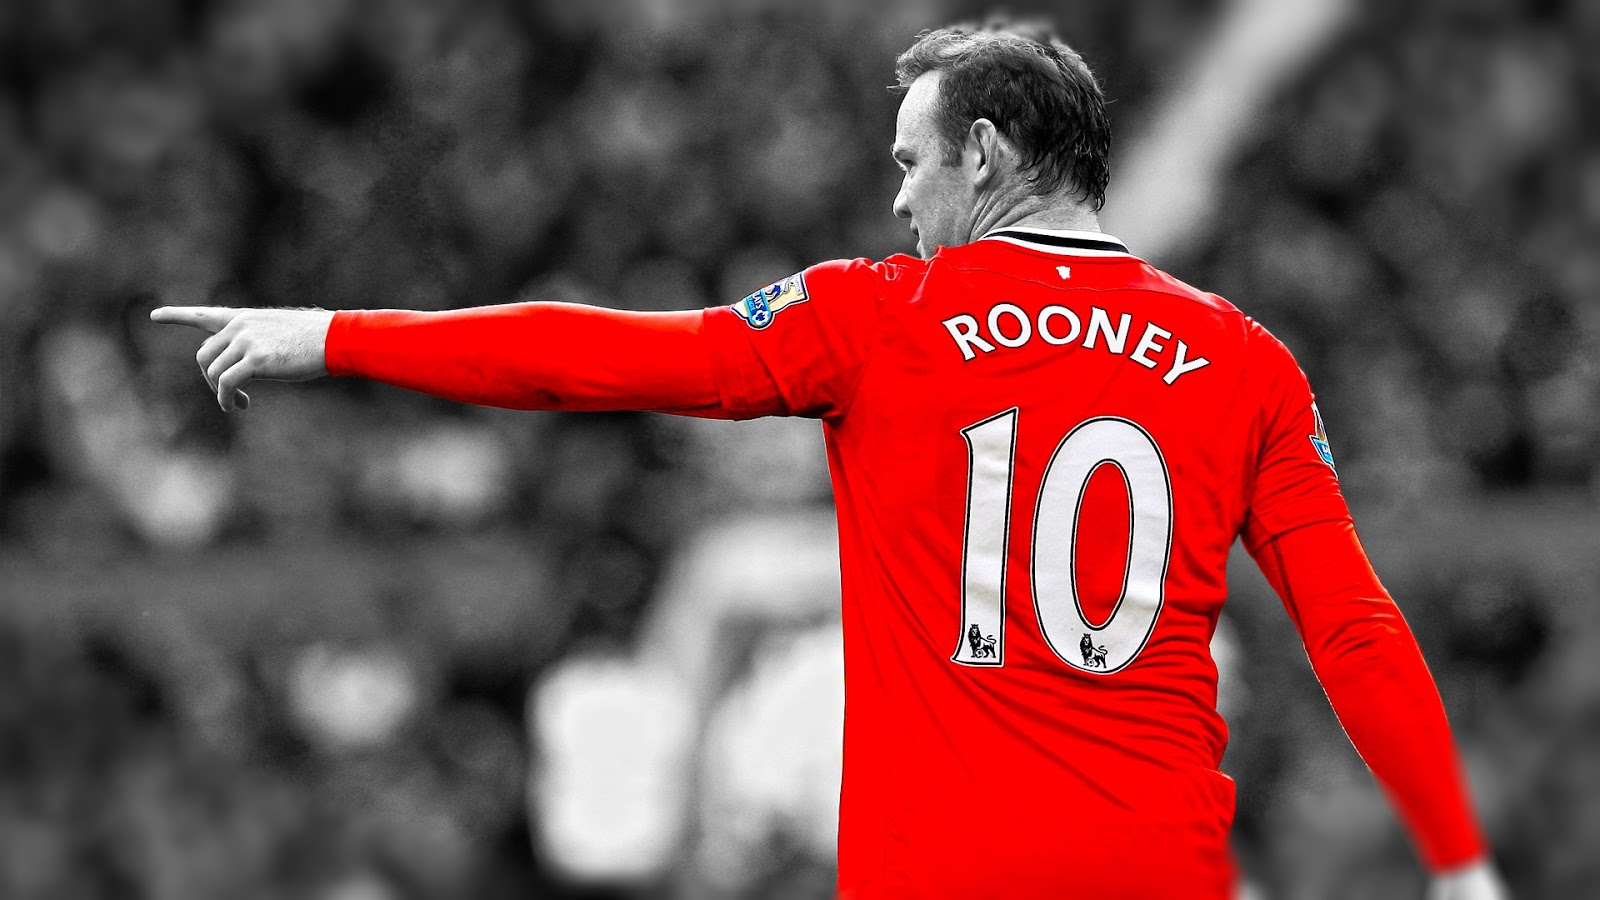 Wayne Rooney Number 10 Wayne Rooney with number jersy